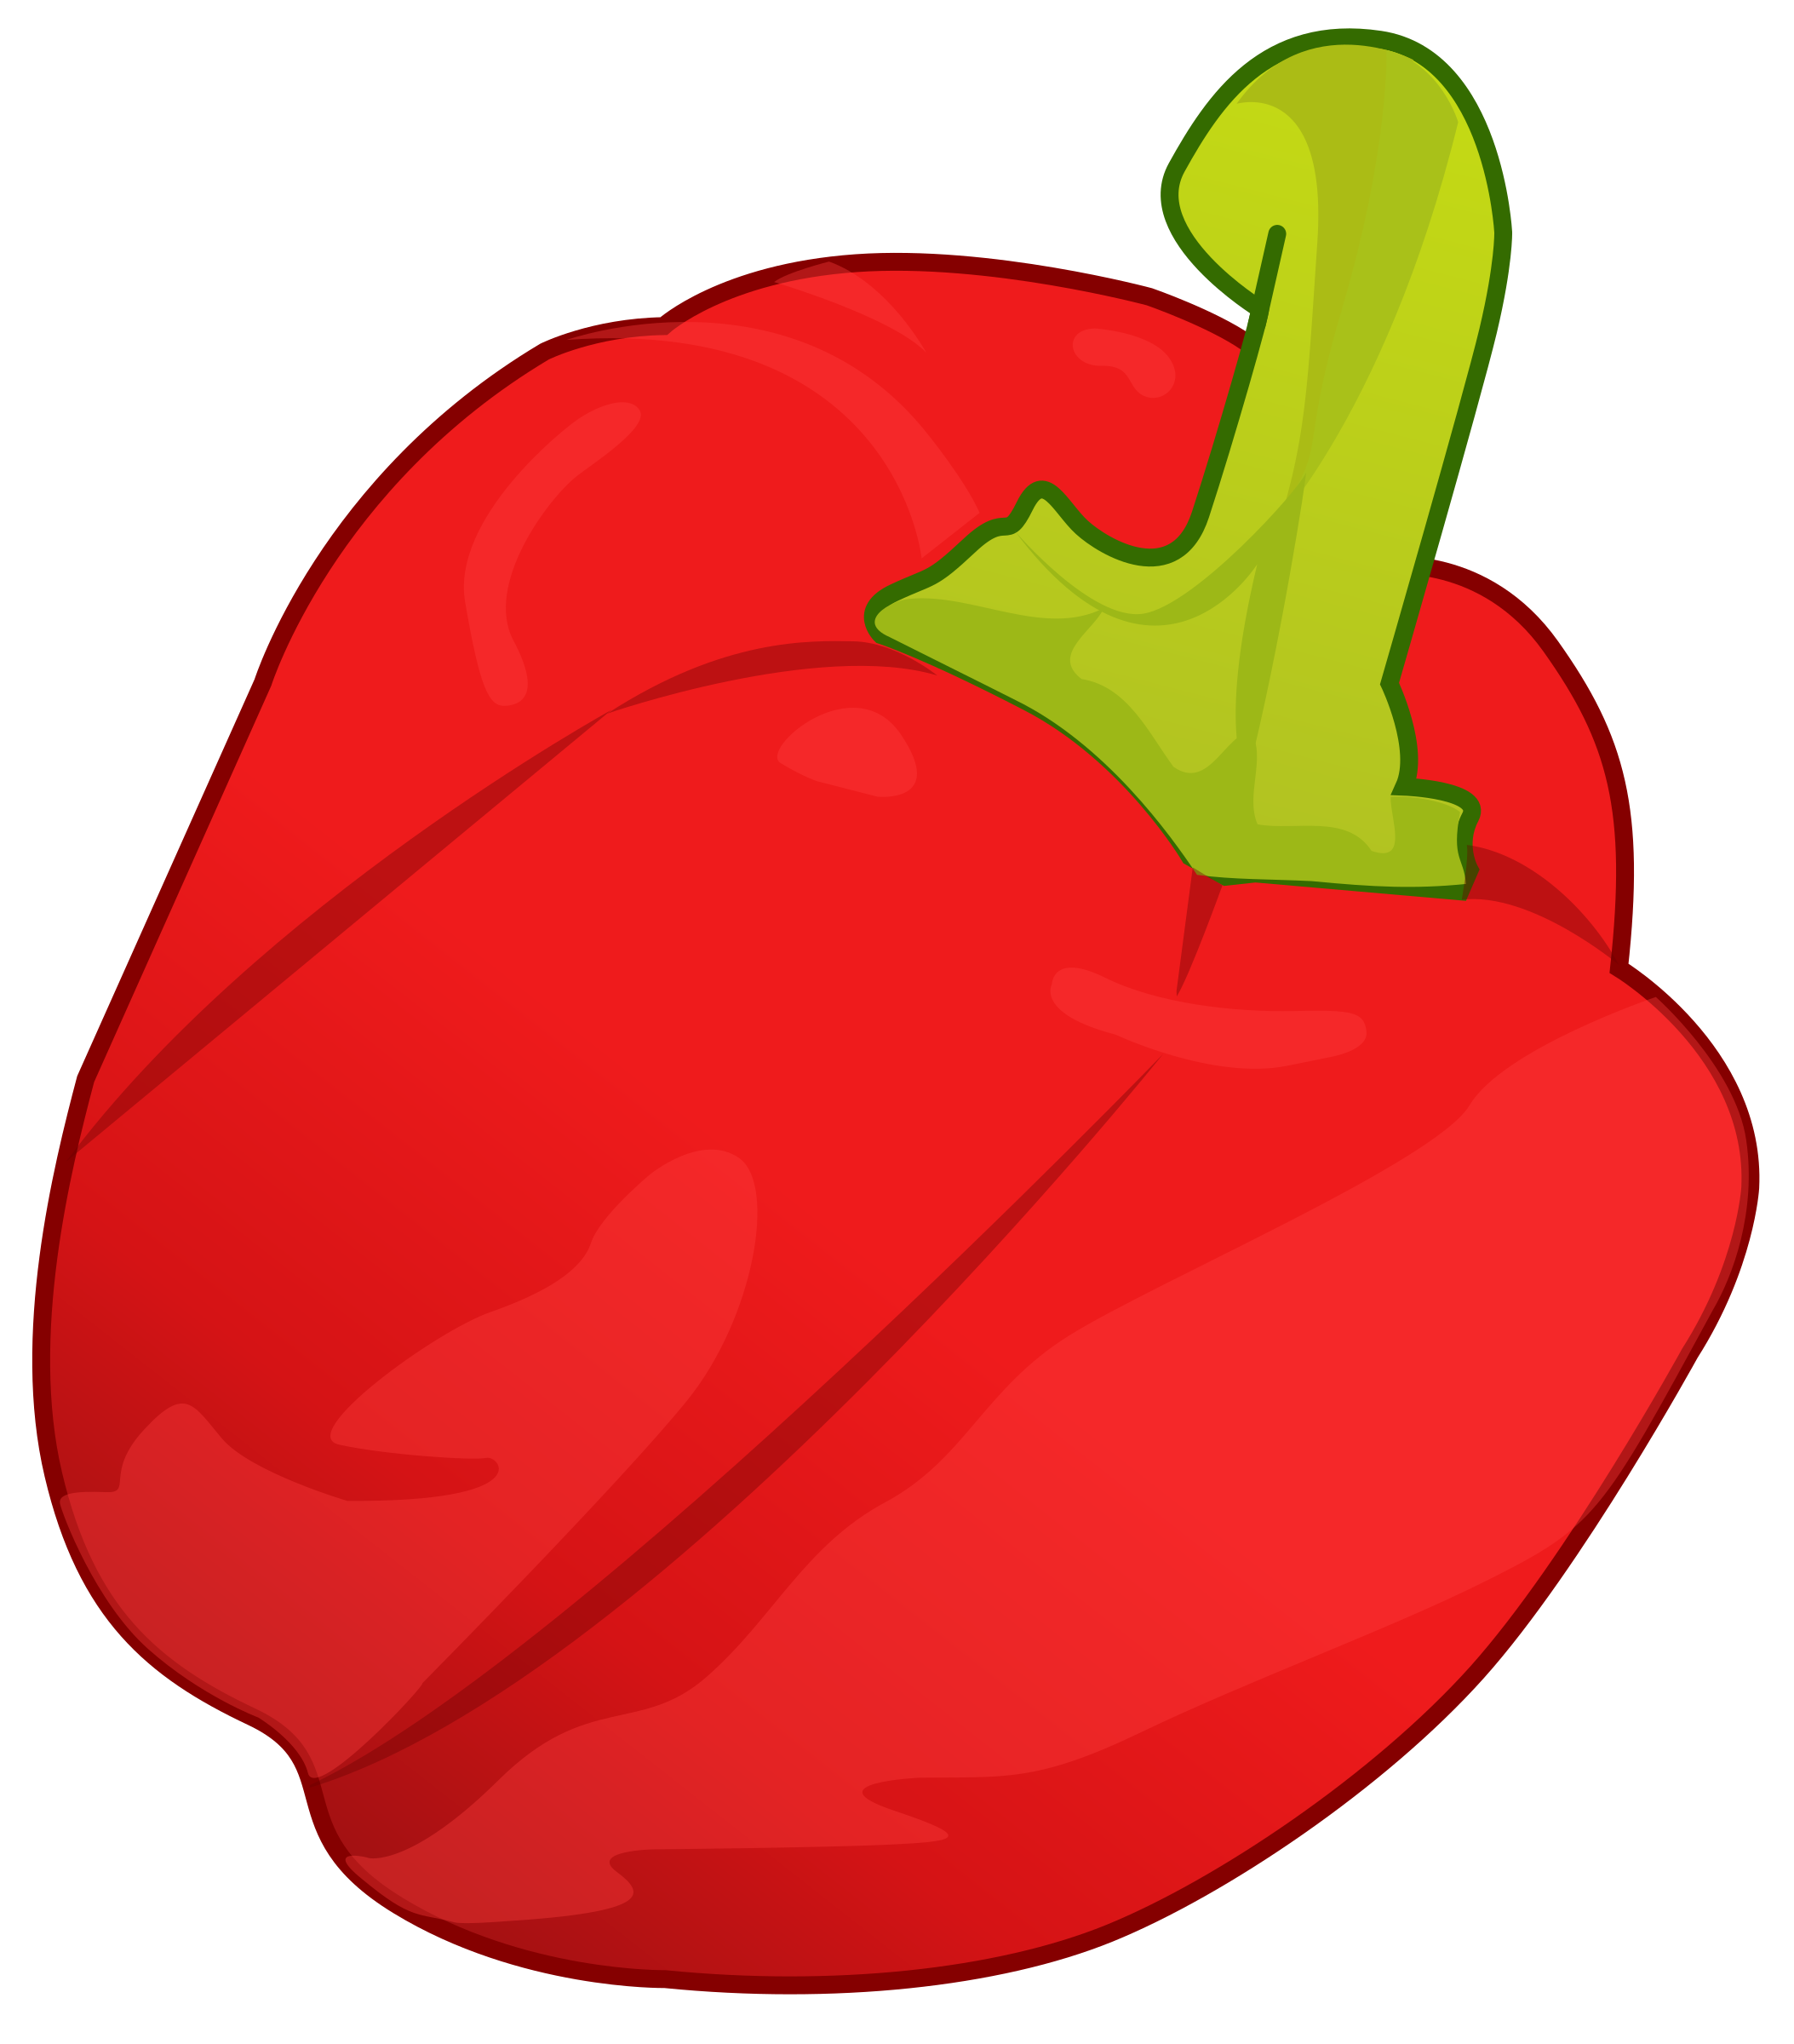 Red pepper big image. Peppers clipart cartoon